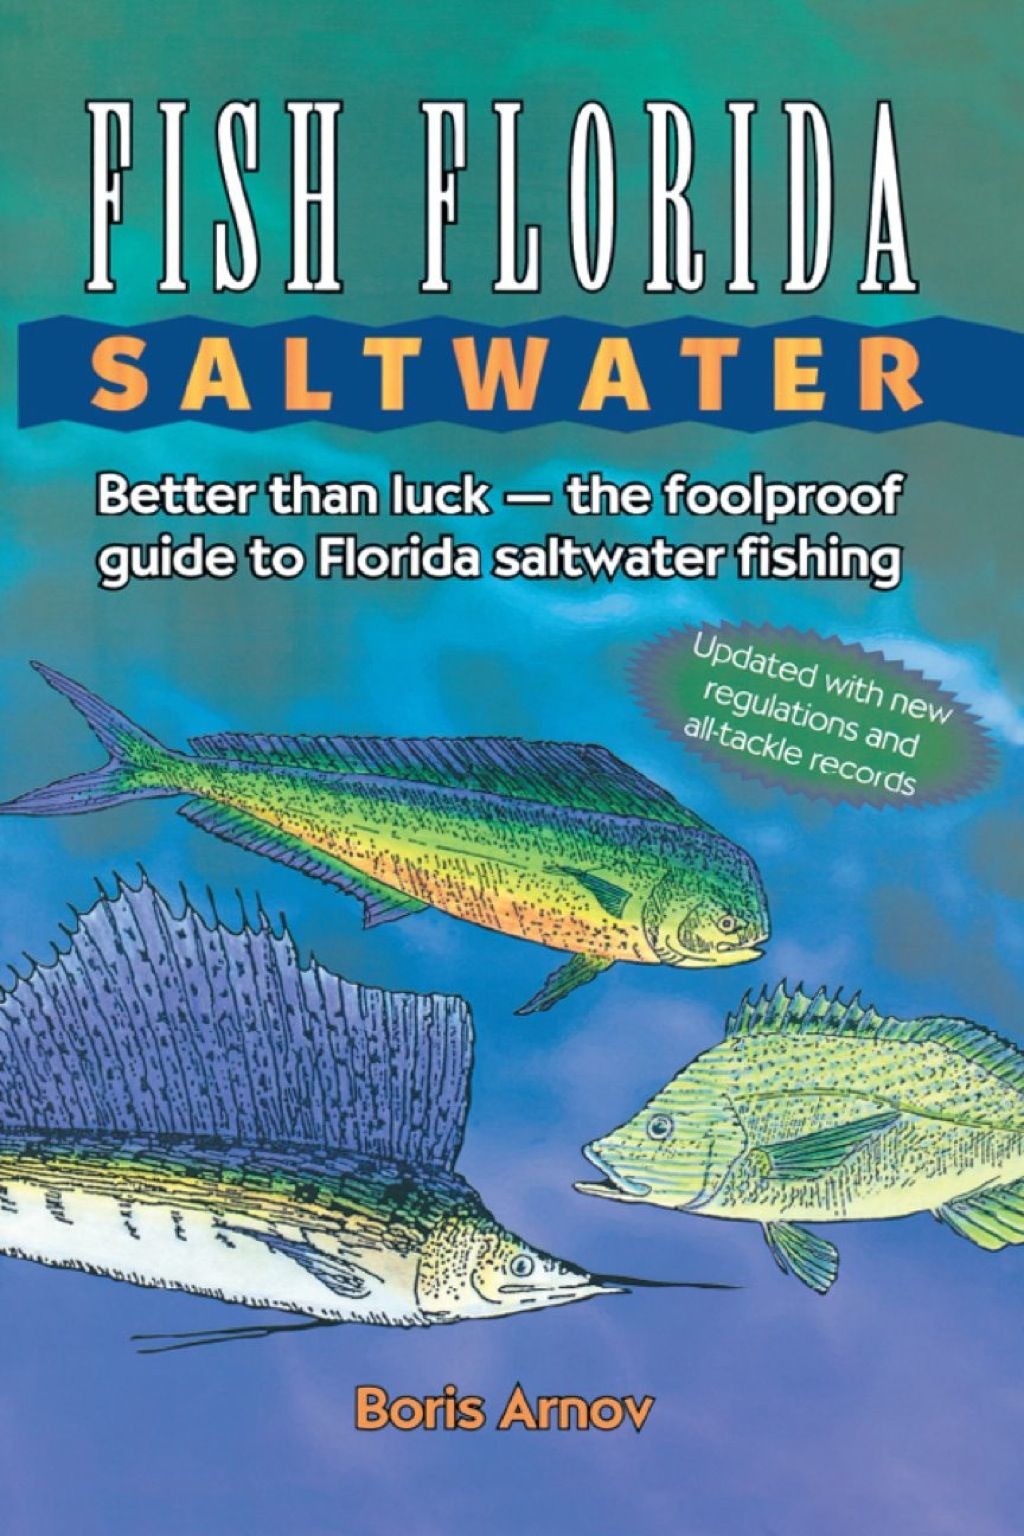 Fish Florida Saltwater Ebook In 2019 Products Saltwater Fishing Fishing Books Saltwater Reels